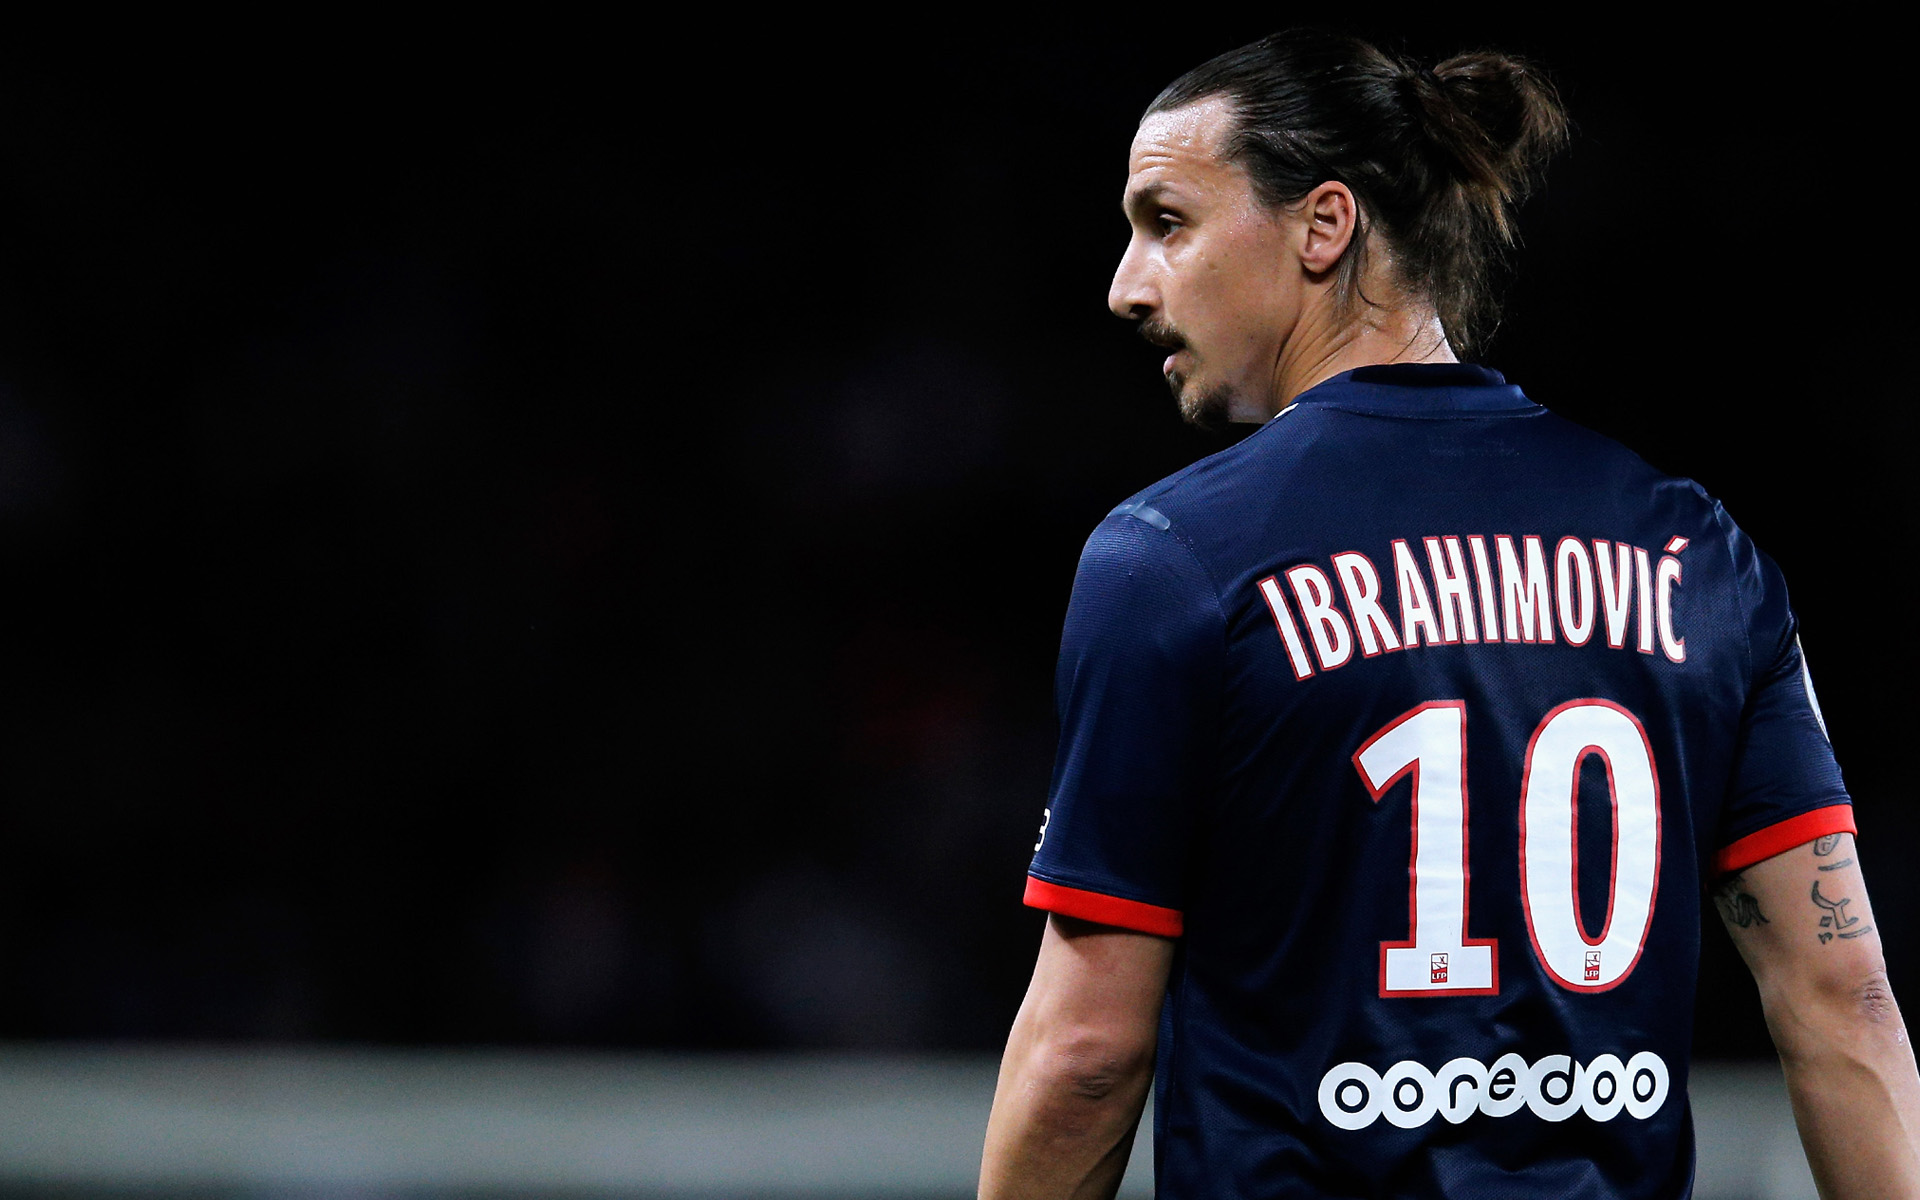 zlatan ibrahimovic wallpapers pictures images. Black Bedroom Furniture Sets. Home Design Ideas